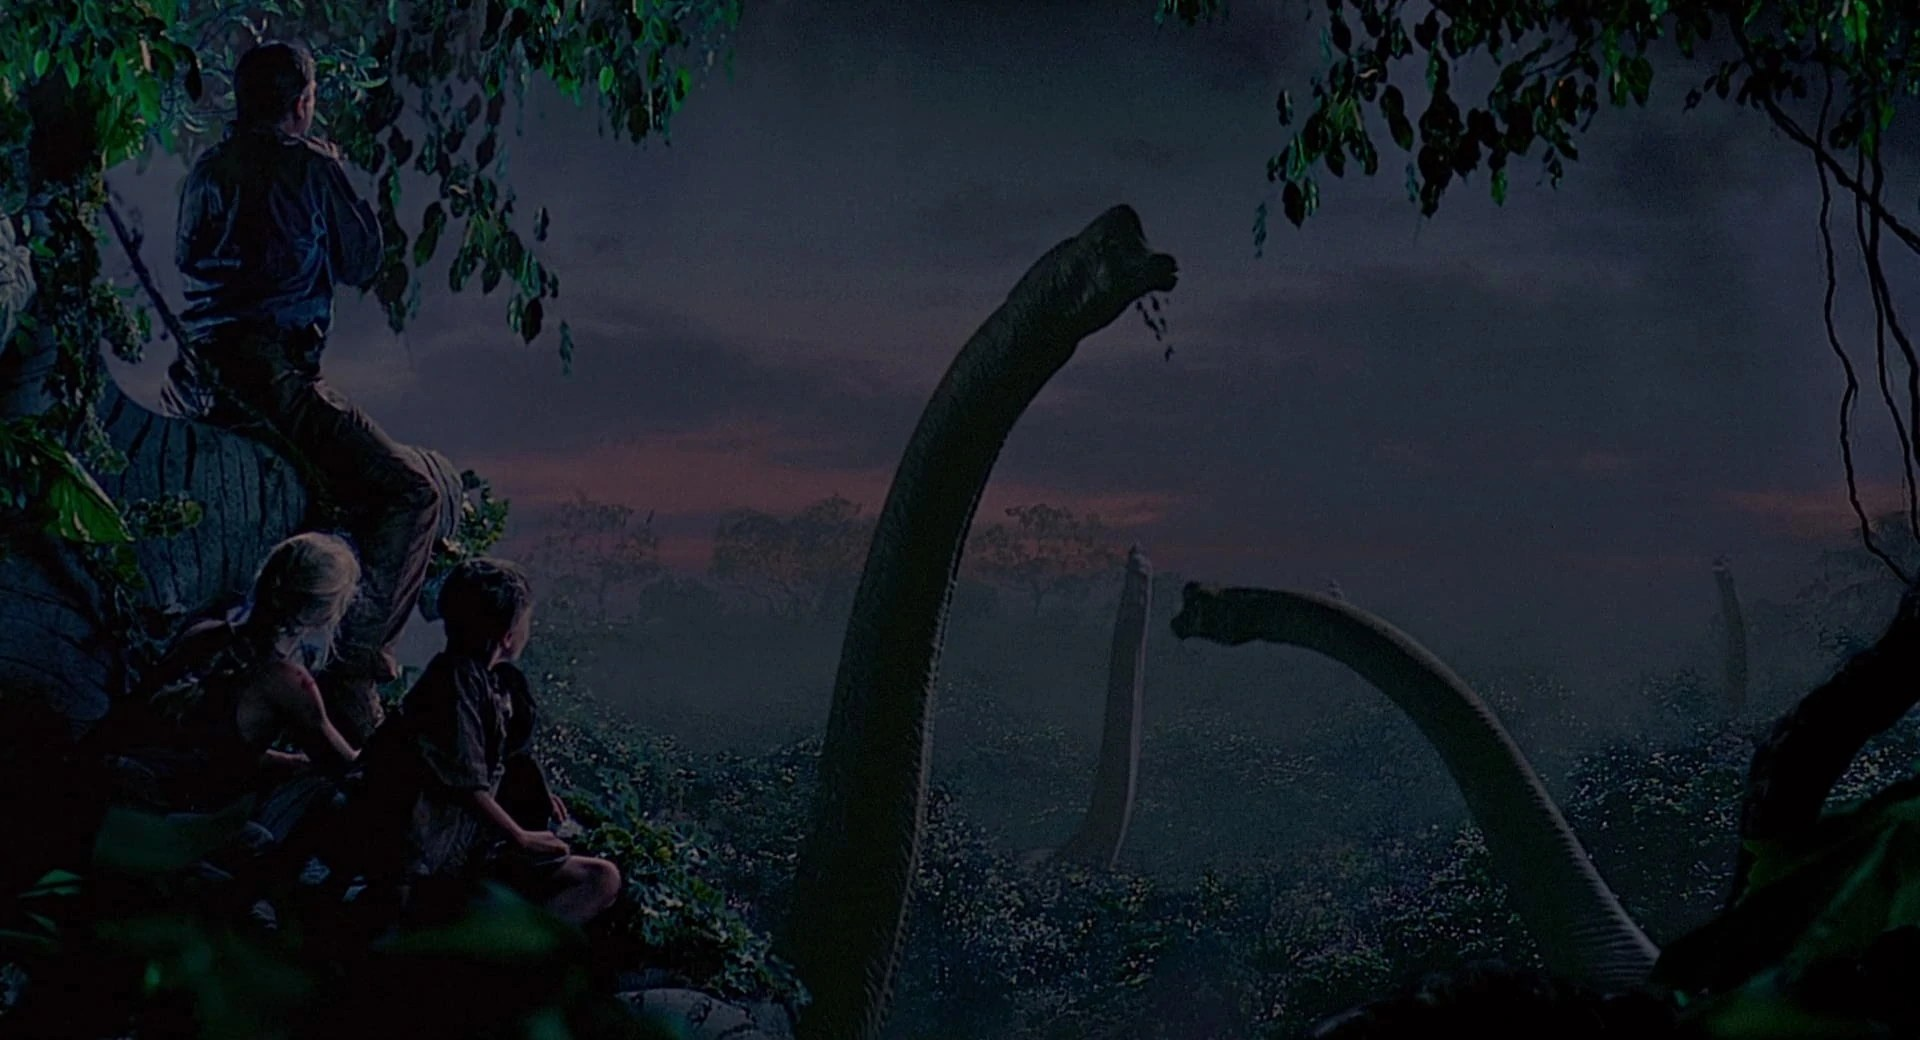 brachiosaurus jurassic park - photo #10